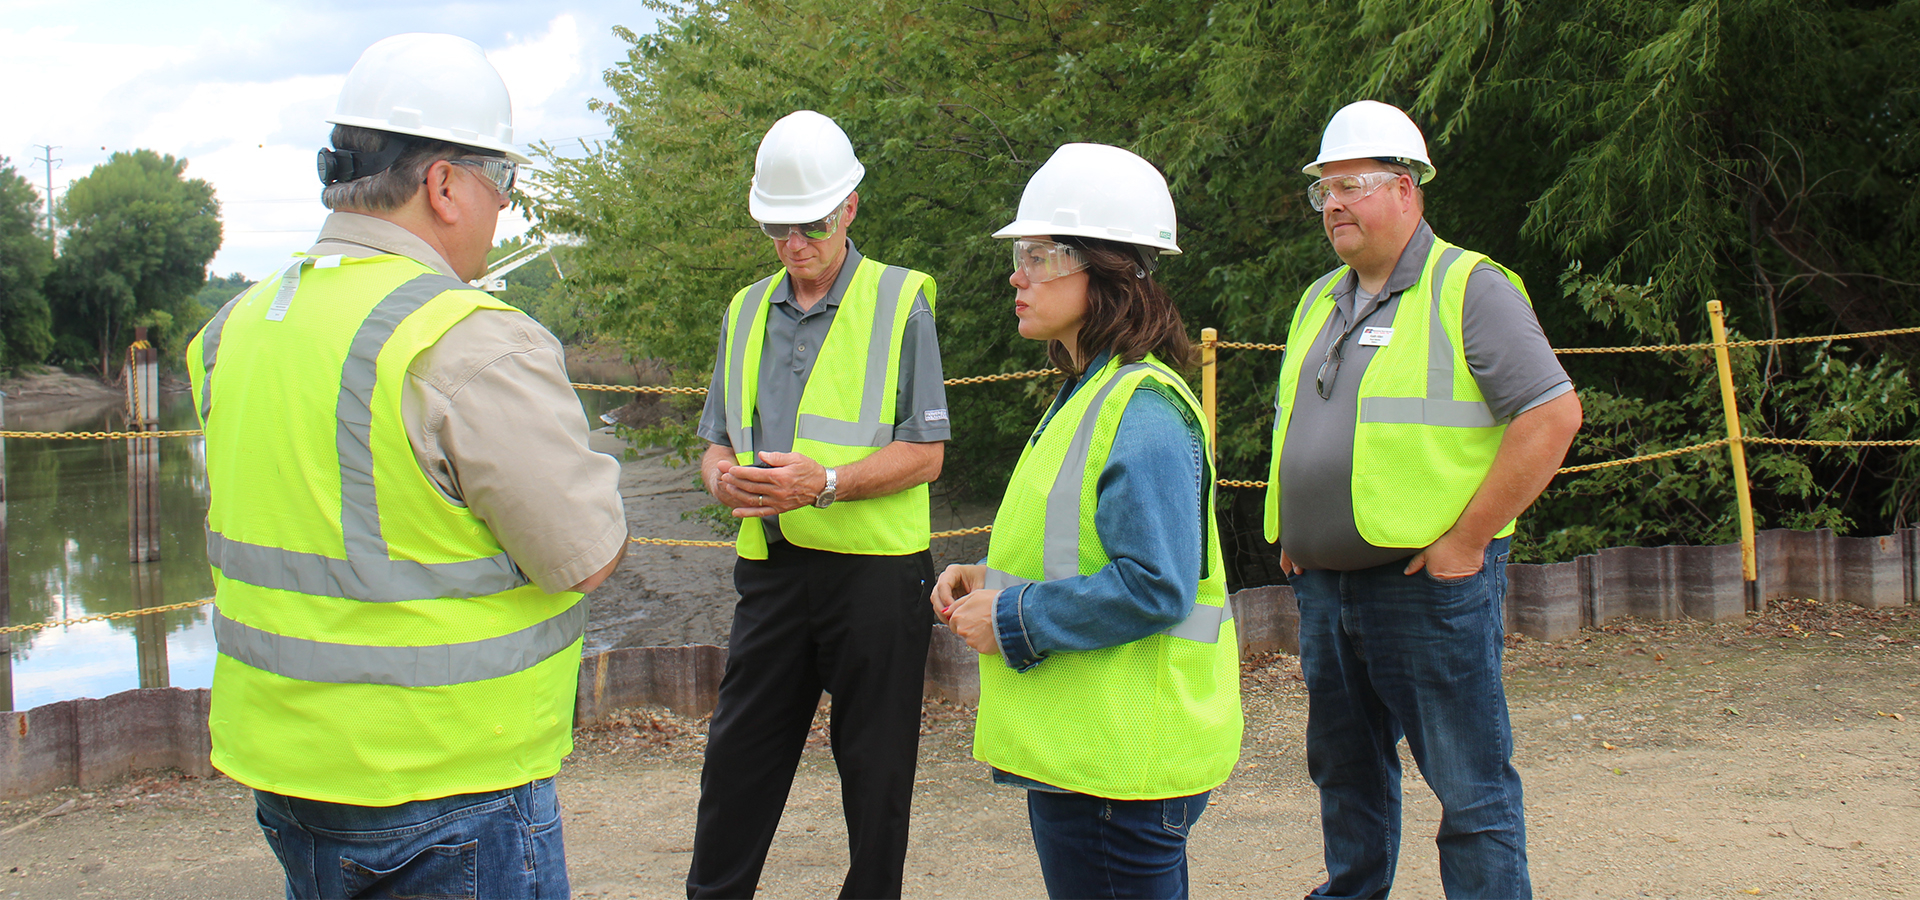 Rep. Craig talking with a group of workers